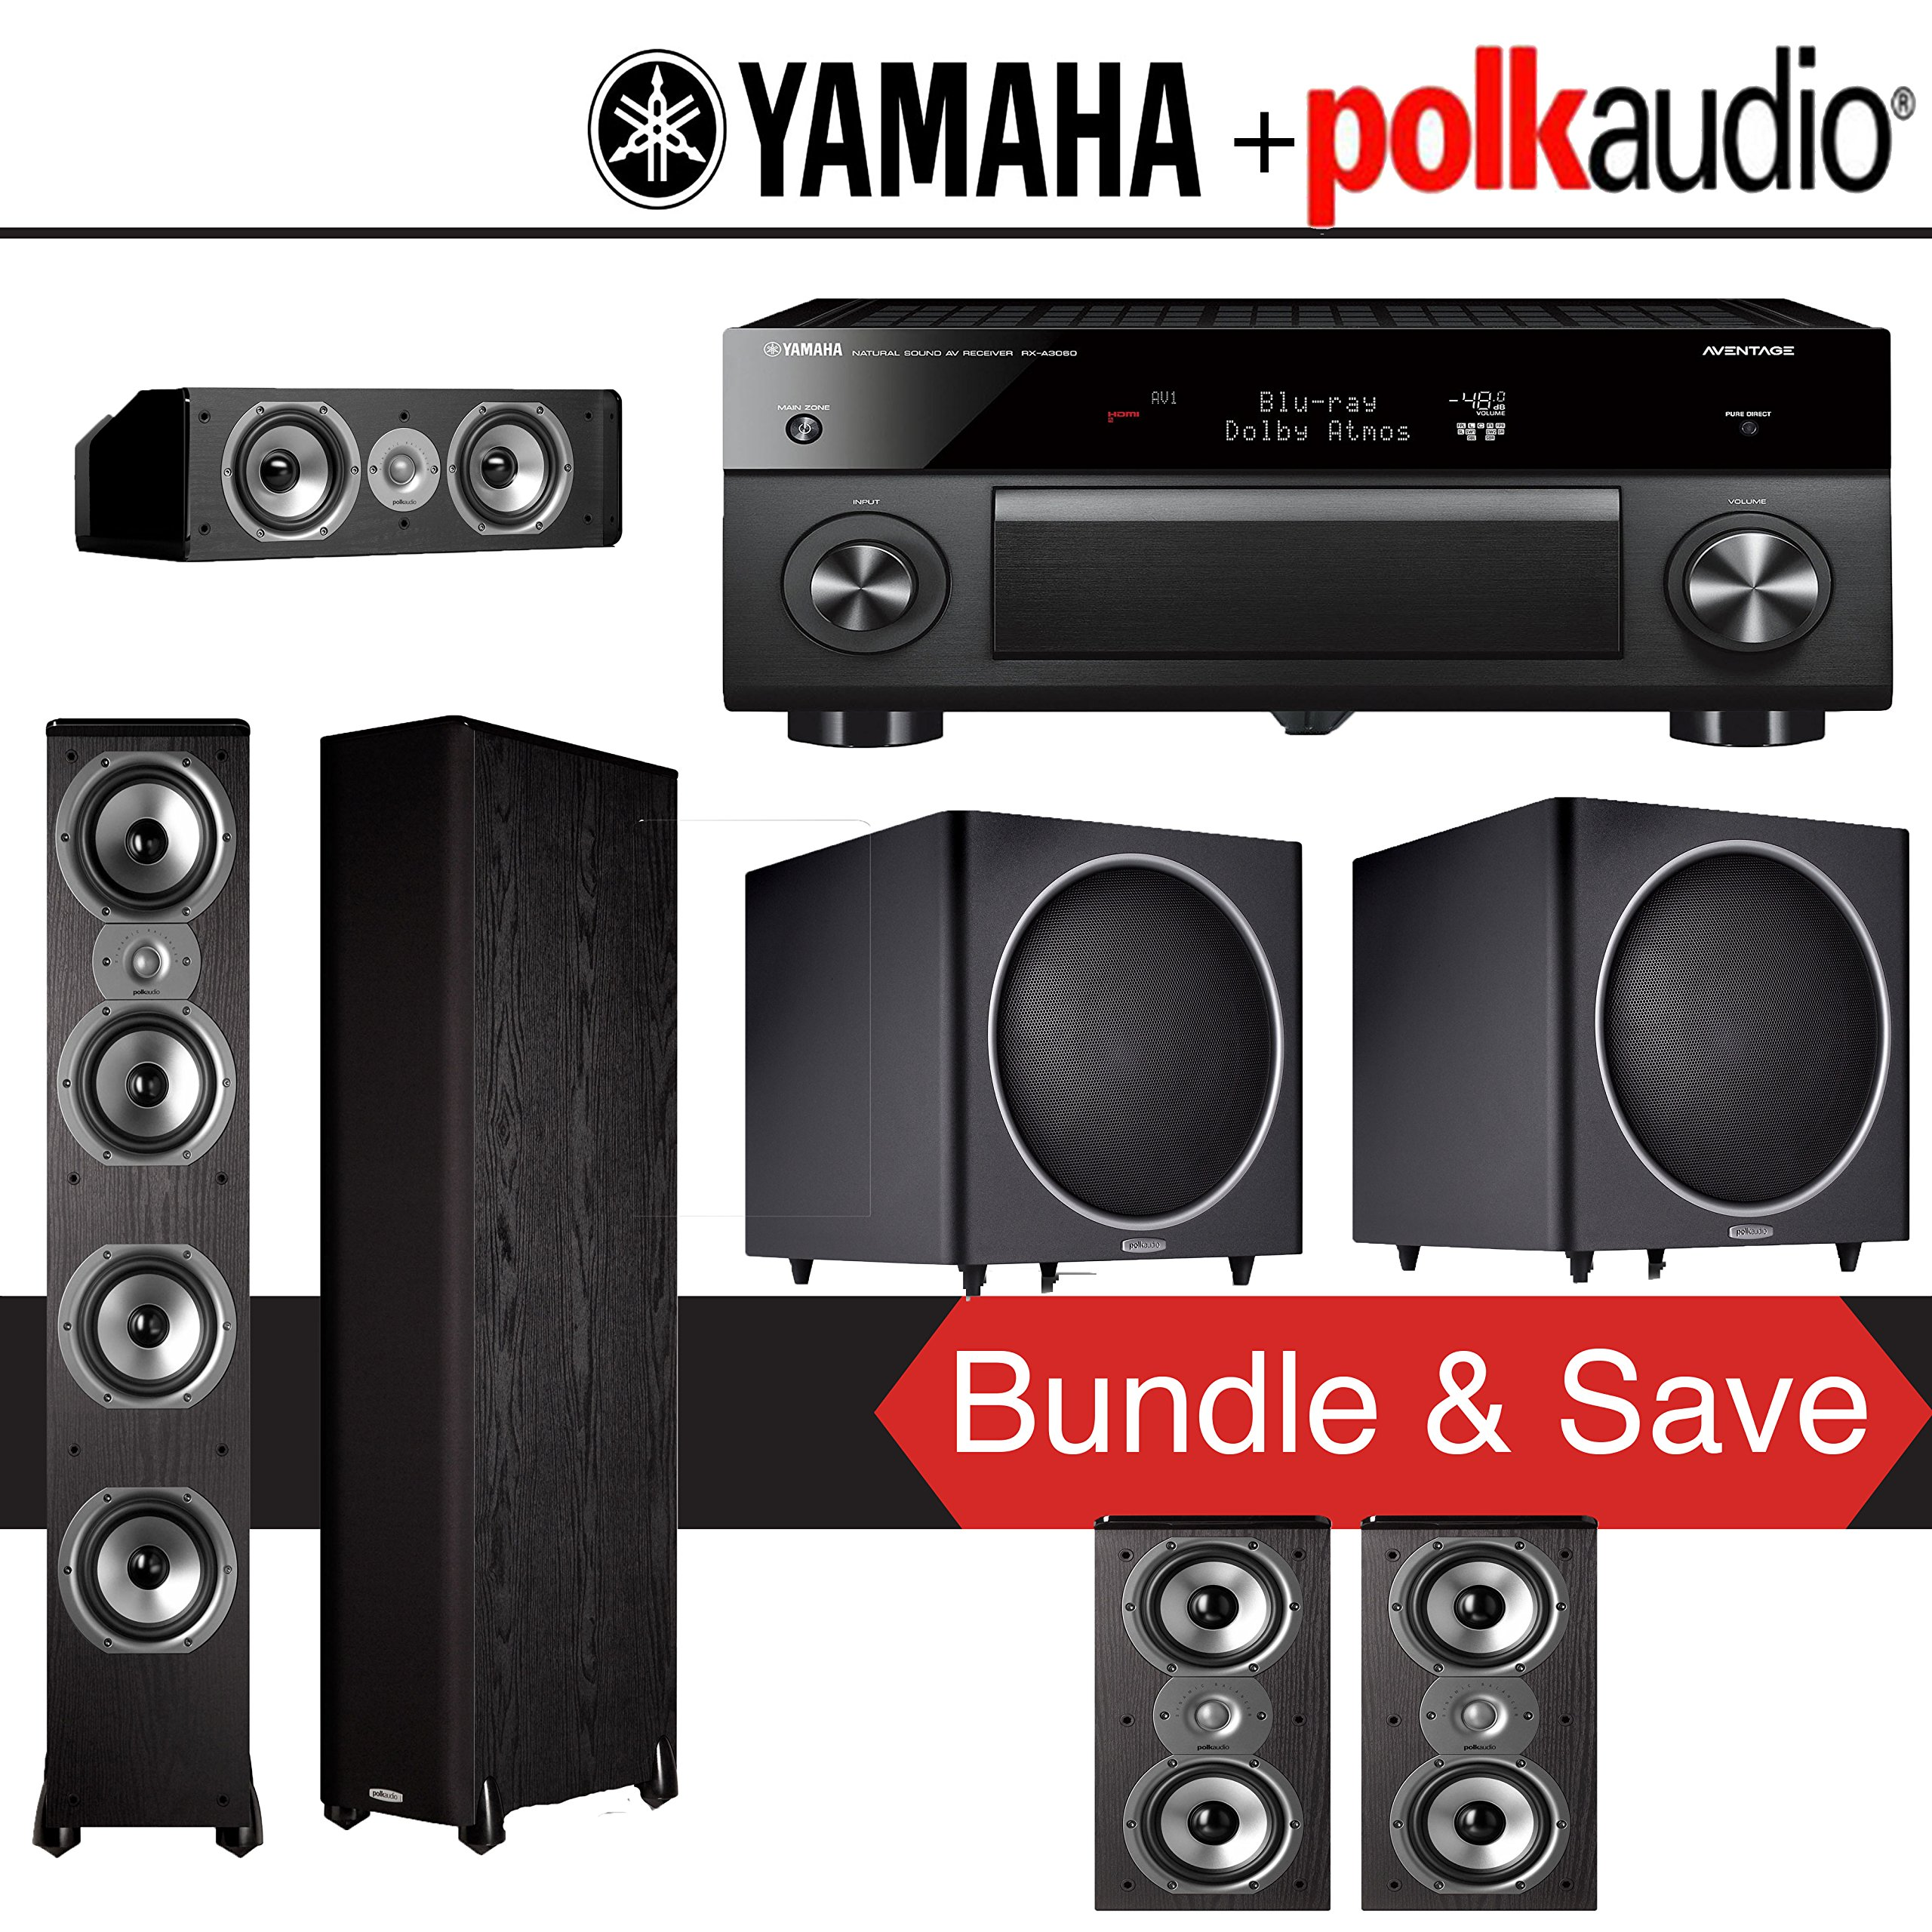 Yamaha RX-A3060BL AVENTAGE 11.2-Channel Network A/V Receiver + Polk Audio TSi 500 + Polk Audi TSi 200 + Polk Audio CS10 + Polk Audio PSW125 - 5.2-Ch Home Theater Package by Polk Audio